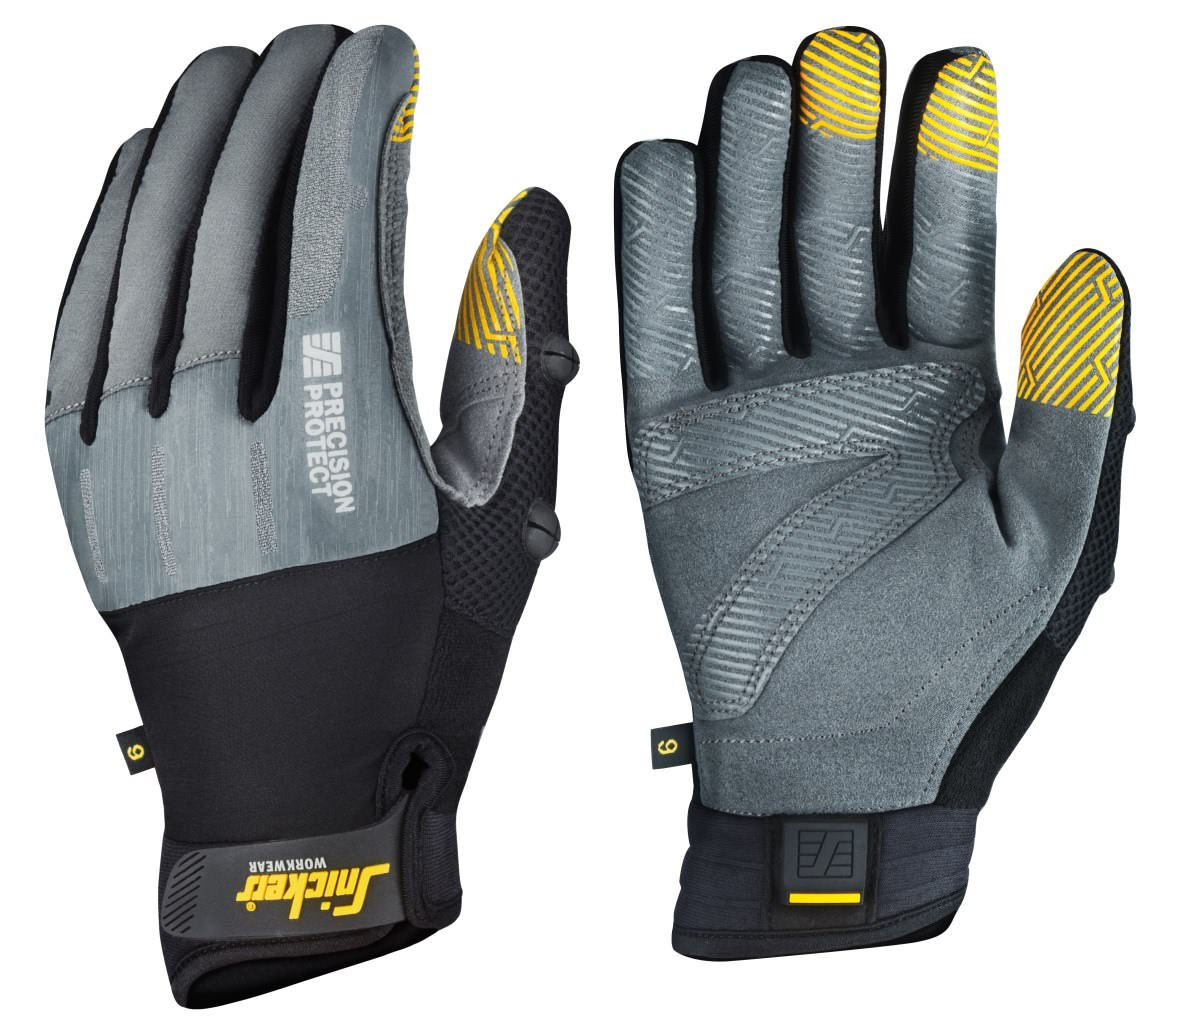 Snickers 9574 Precision Protect Gloves